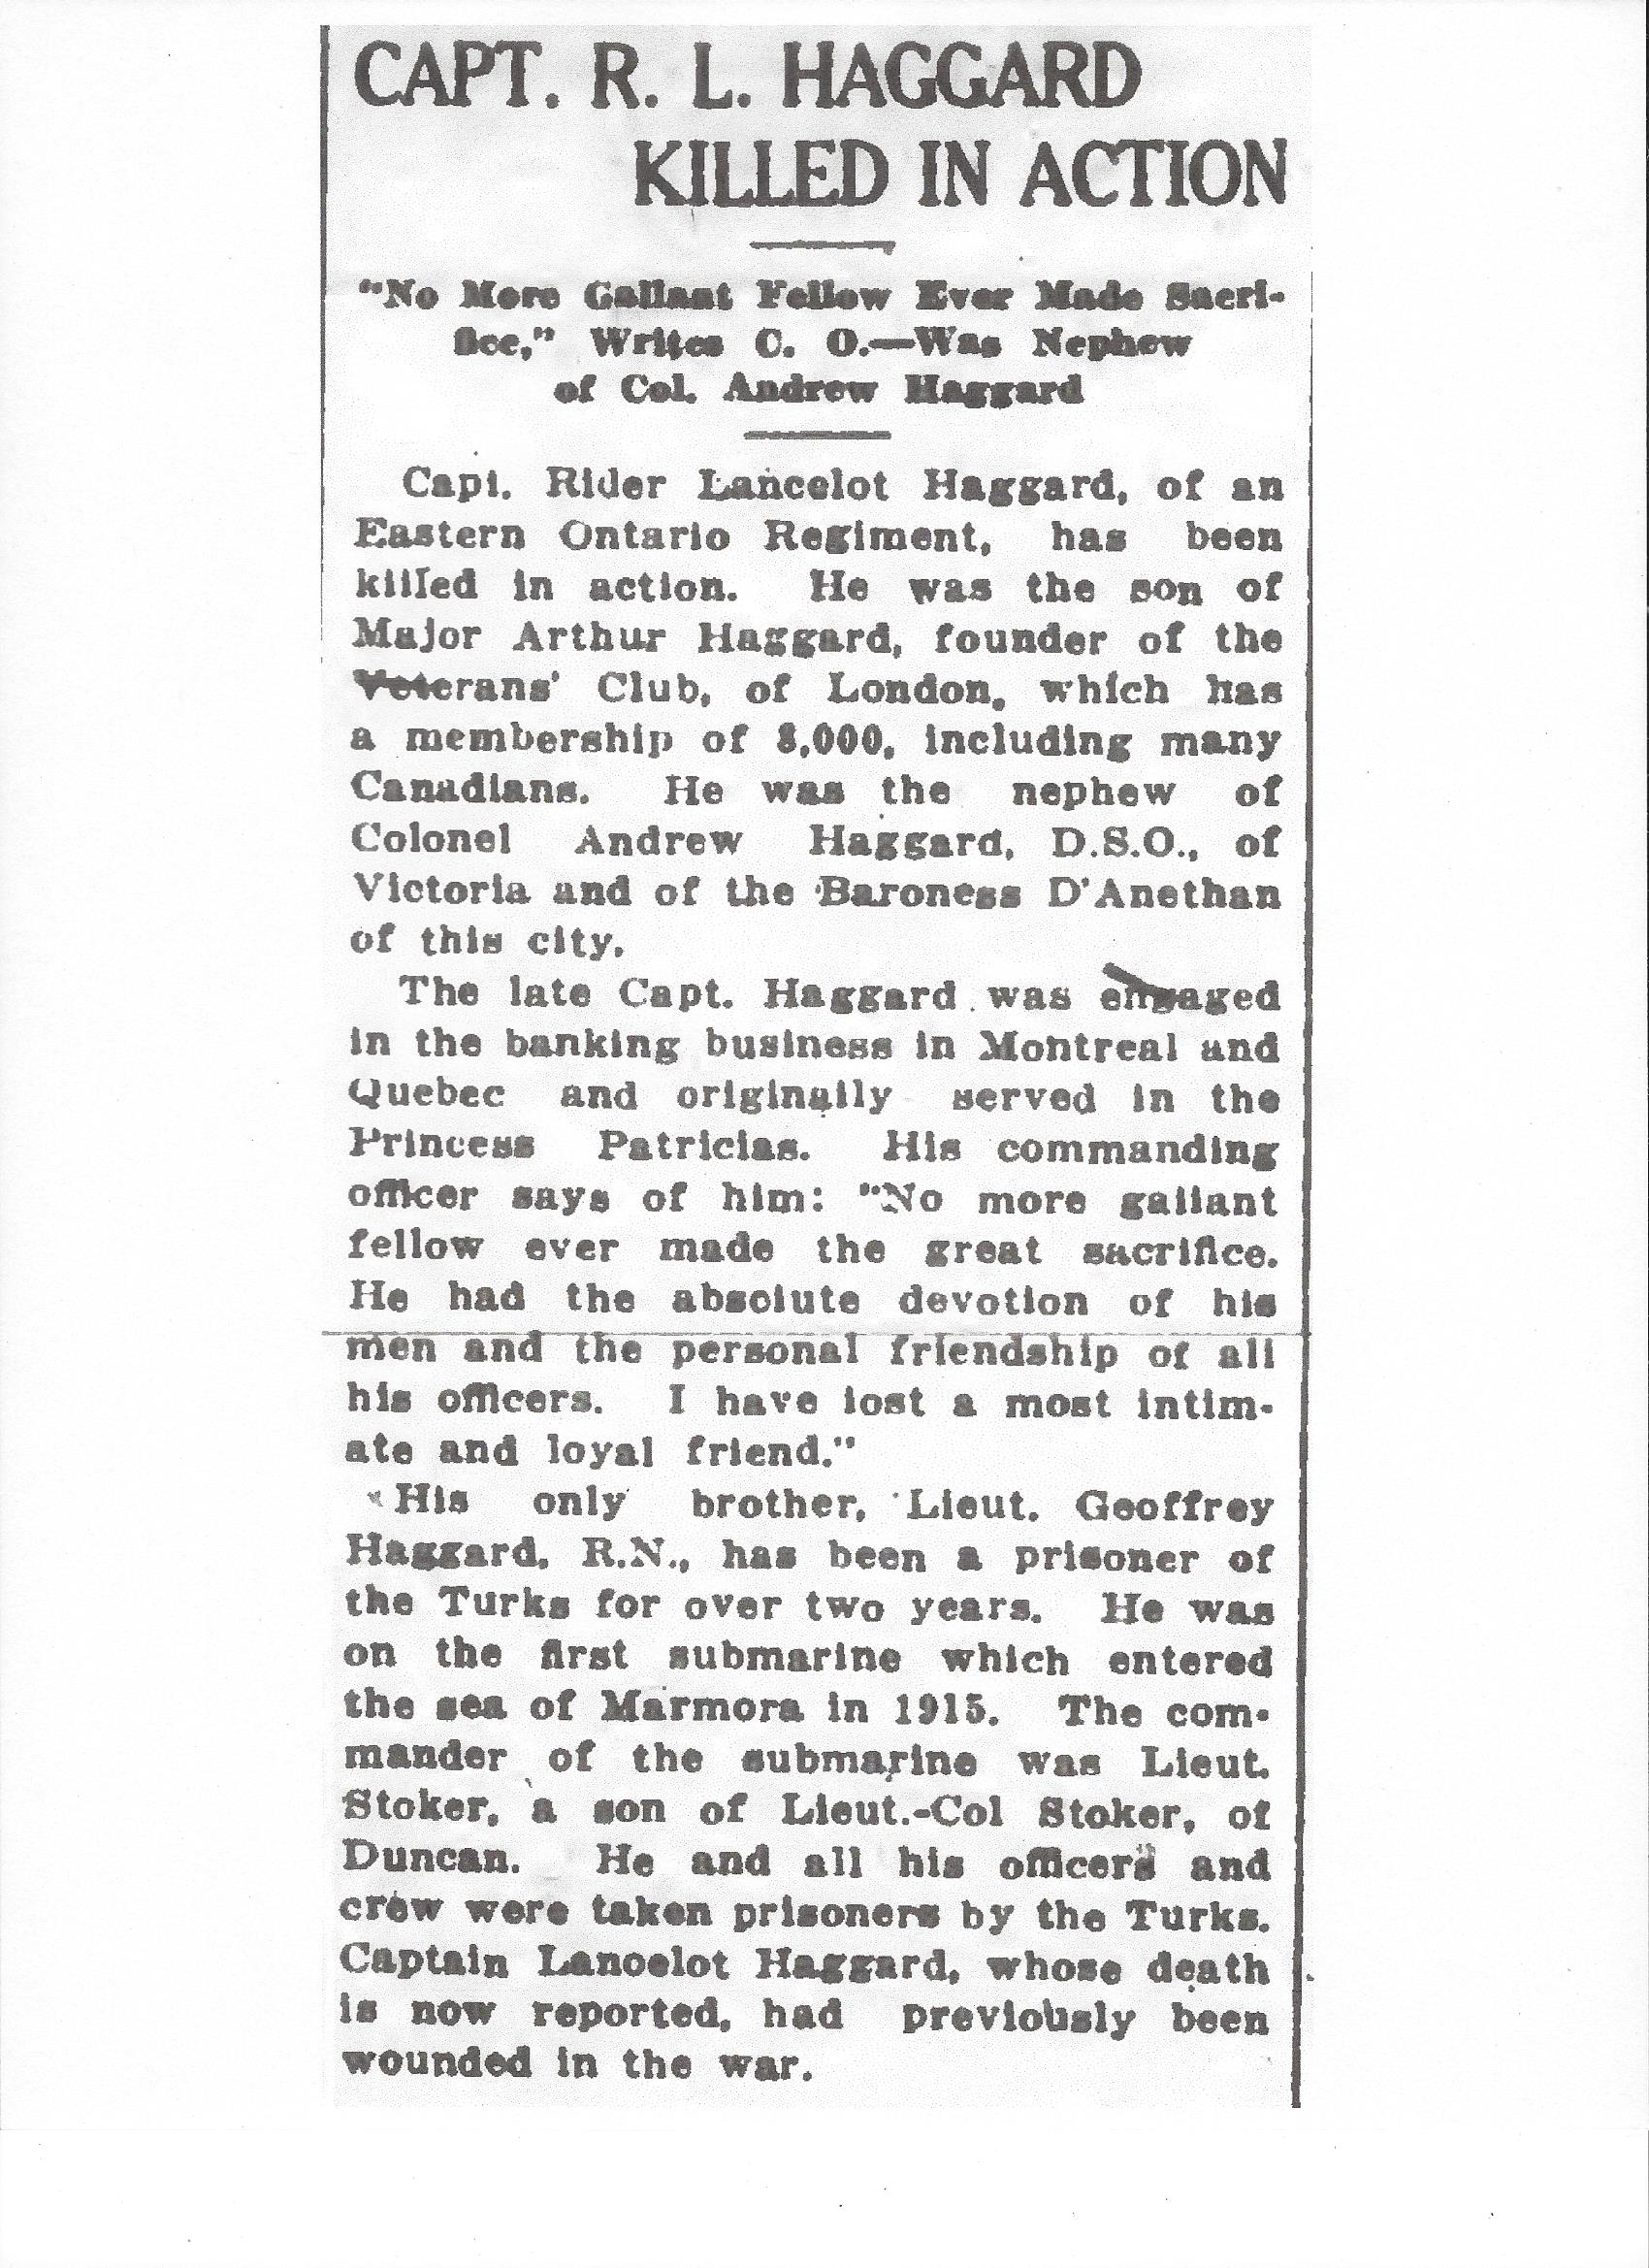 Newspaper clipping– Newspaper clipping from the Daily Colonist of November 15, 1917. Image taken from web address of http://archive.org/stream/dailycolonist59y293uvic#page/n0/mode/1up